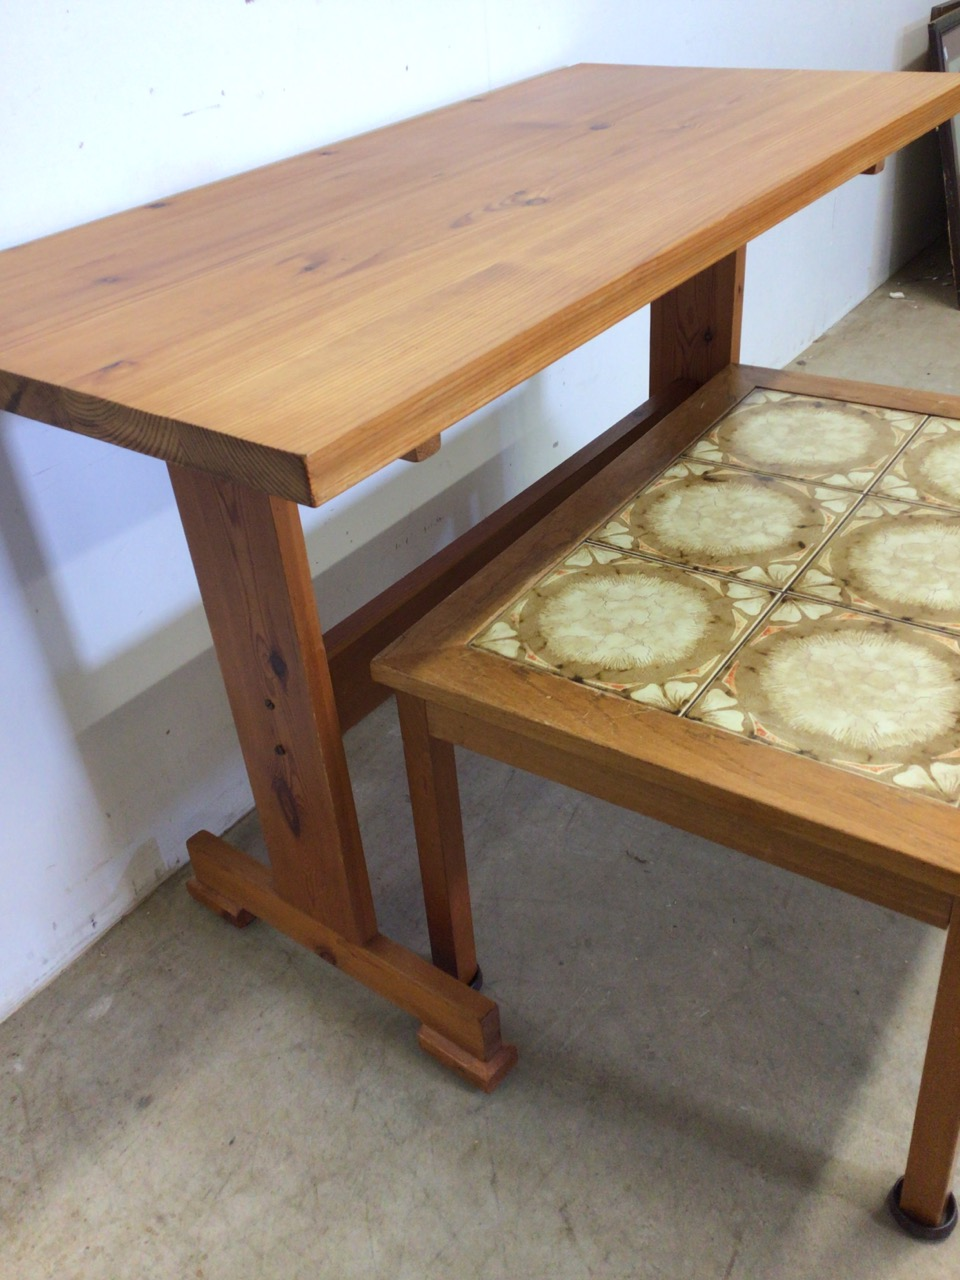 A pine table also with a tiled topped coffee table. W:107cm x D:52cm x H:74cm - Image 3 of 4